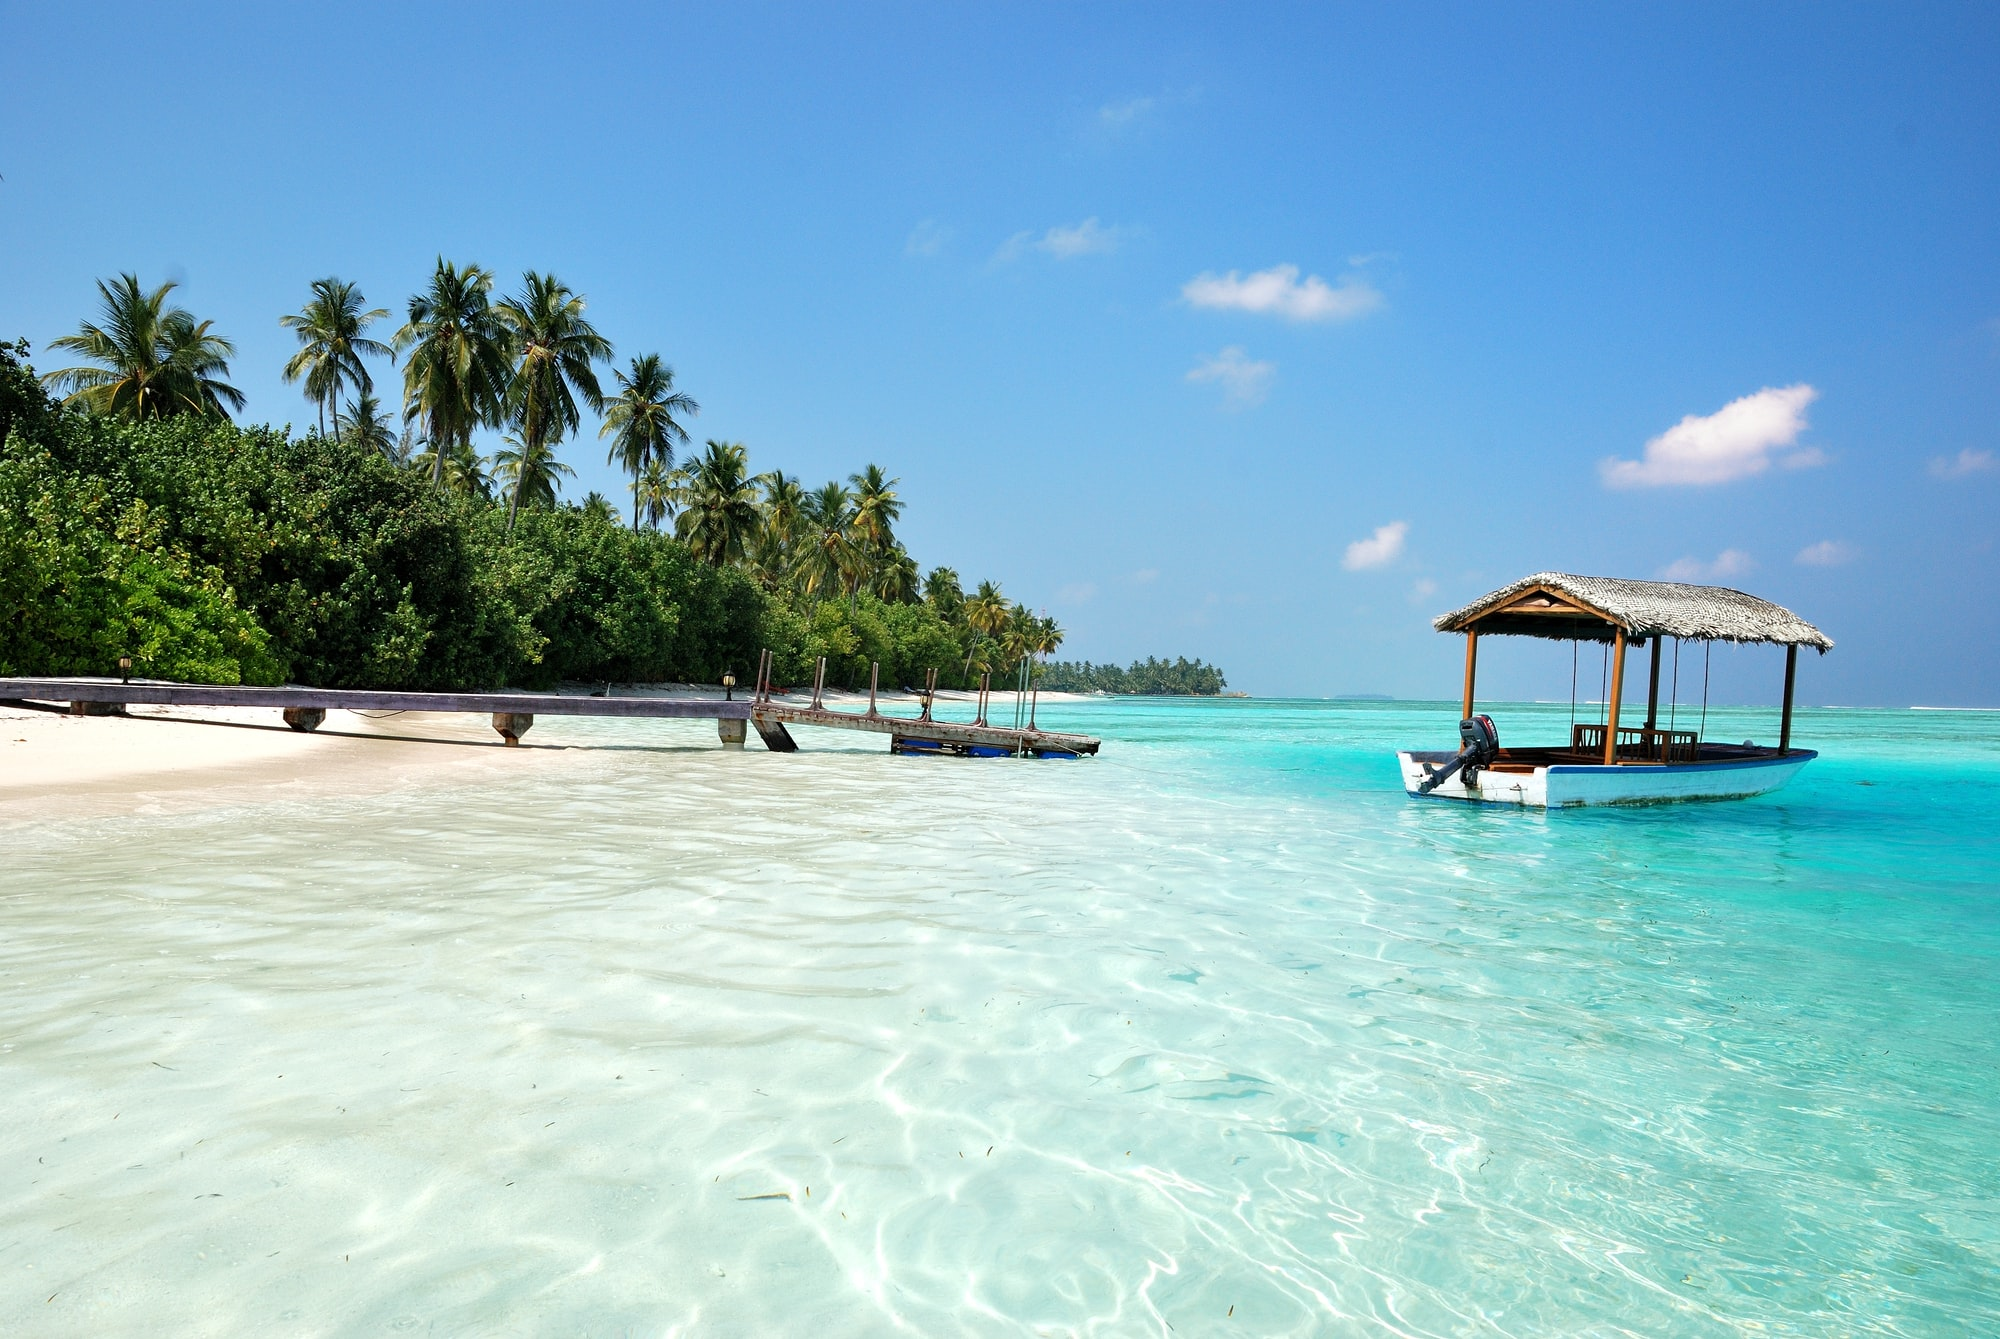 A fantastic beach on the island of Medhufushi  in the Maldives.